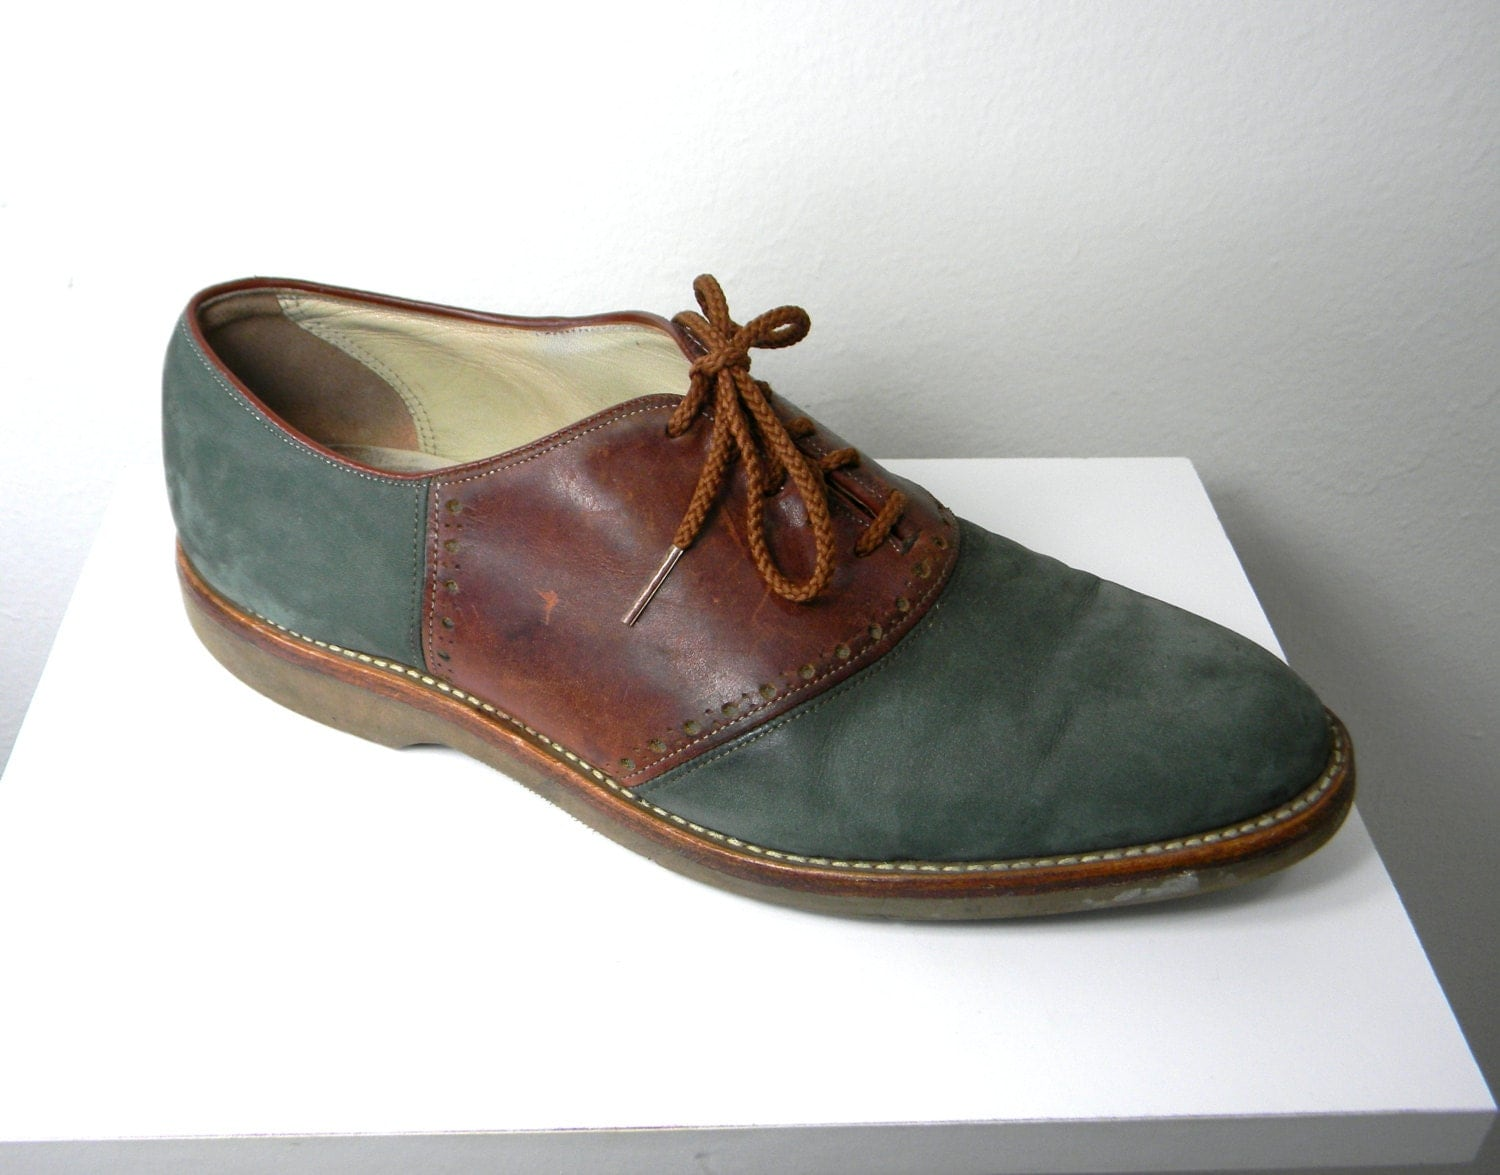 teal suede vintage s oxford saddle shoes by